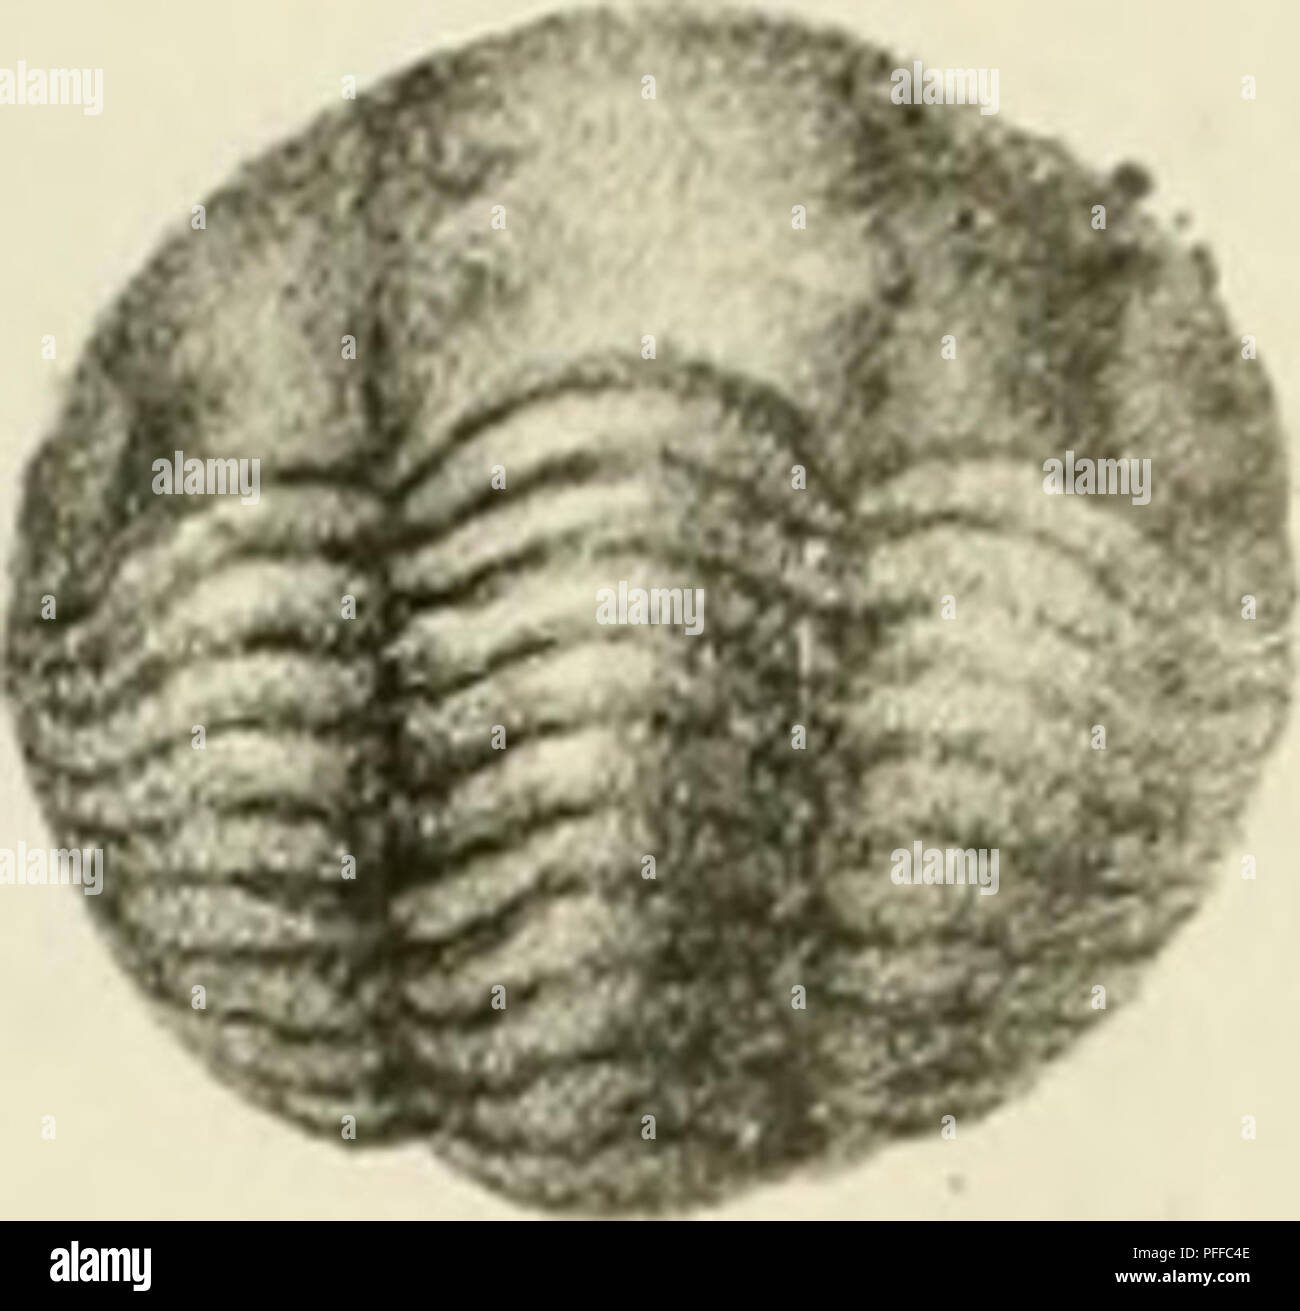 . D. Eduardi Eichwaldi, publ. ord. apud Casanens. Profess. Acad. Caes. Nat. Cur. Leop. Carol. mult. Societ. Liter. Socii, Geognostico-zoologicae per ingriam marisque Baltici provincias nec non de trilobitis observationes. Geology; Zoology; Paleontology. f-iif J. ./. Please note that these images are extracted from scanned page images that may have been digitally enhanced for readability - coloration and appearance of these illustrations may not perfectly resemble the original work.. Eichwald, Carl Eduard von, 1795-1876; Kazanski universitet. Casani : Typis Universitatis Caesareis - Stock Image